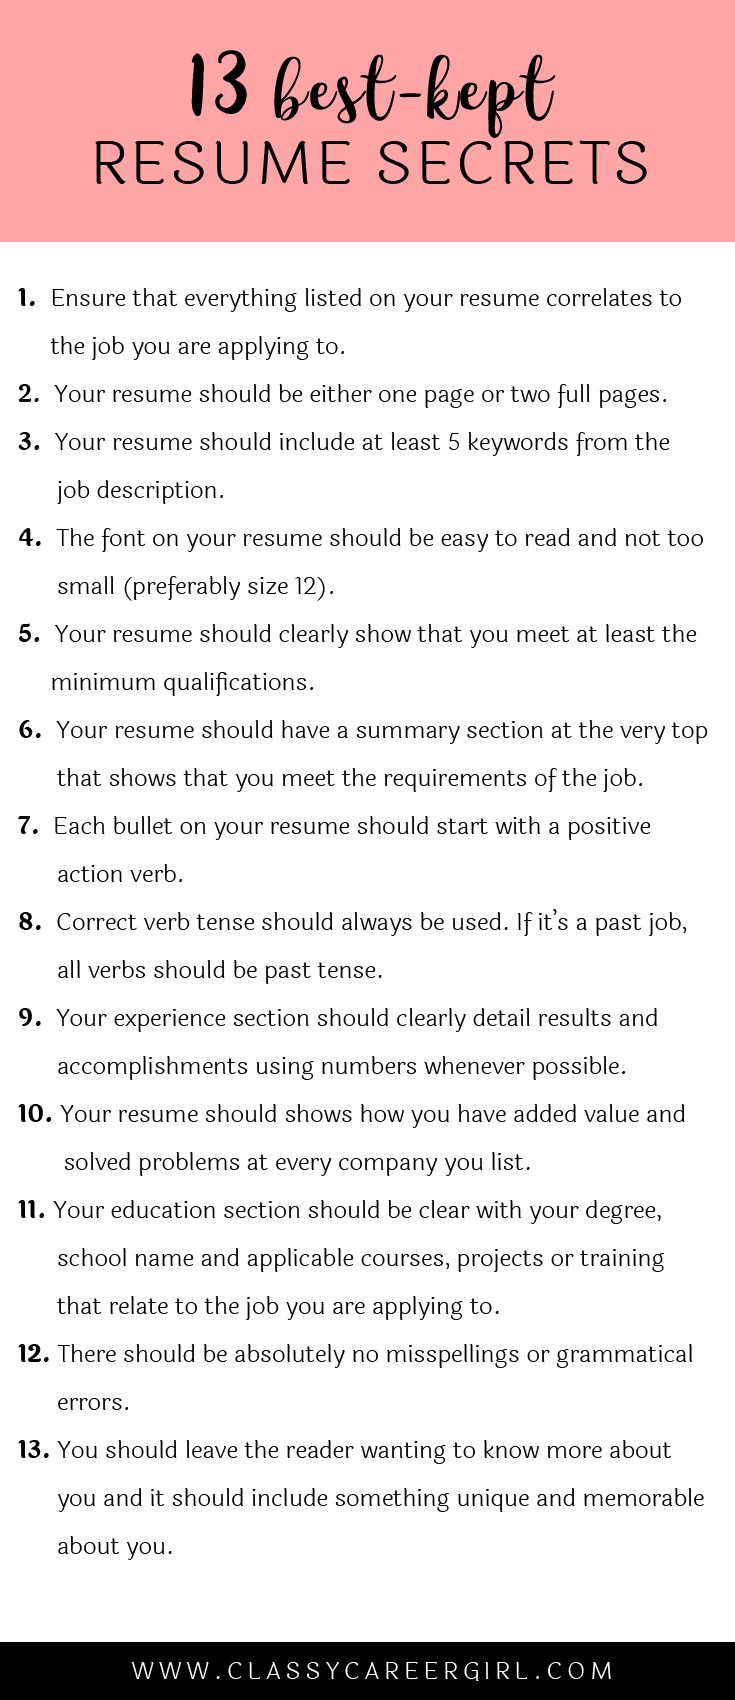 Opposenewapstandardsus  Scenic  Ideas About Resume On Pinterest  Cv Format Resume Cv And  With Inspiring Some Hiring Managers Will Toss Your Resume Out If You Dont Know These  With Extraordinary Cma Resume Also How To Do A Proper Resume In Addition Customer Service Job Resume And Acting Resume Special Skills As Well As Resume Summary Of Qualifications Examples Additionally Should I Include High School On Resume From Pinterestcom With Opposenewapstandardsus  Inspiring  Ideas About Resume On Pinterest  Cv Format Resume Cv And  With Extraordinary Some Hiring Managers Will Toss Your Resume Out If You Dont Know These  And Scenic Cma Resume Also How To Do A Proper Resume In Addition Customer Service Job Resume From Pinterestcom